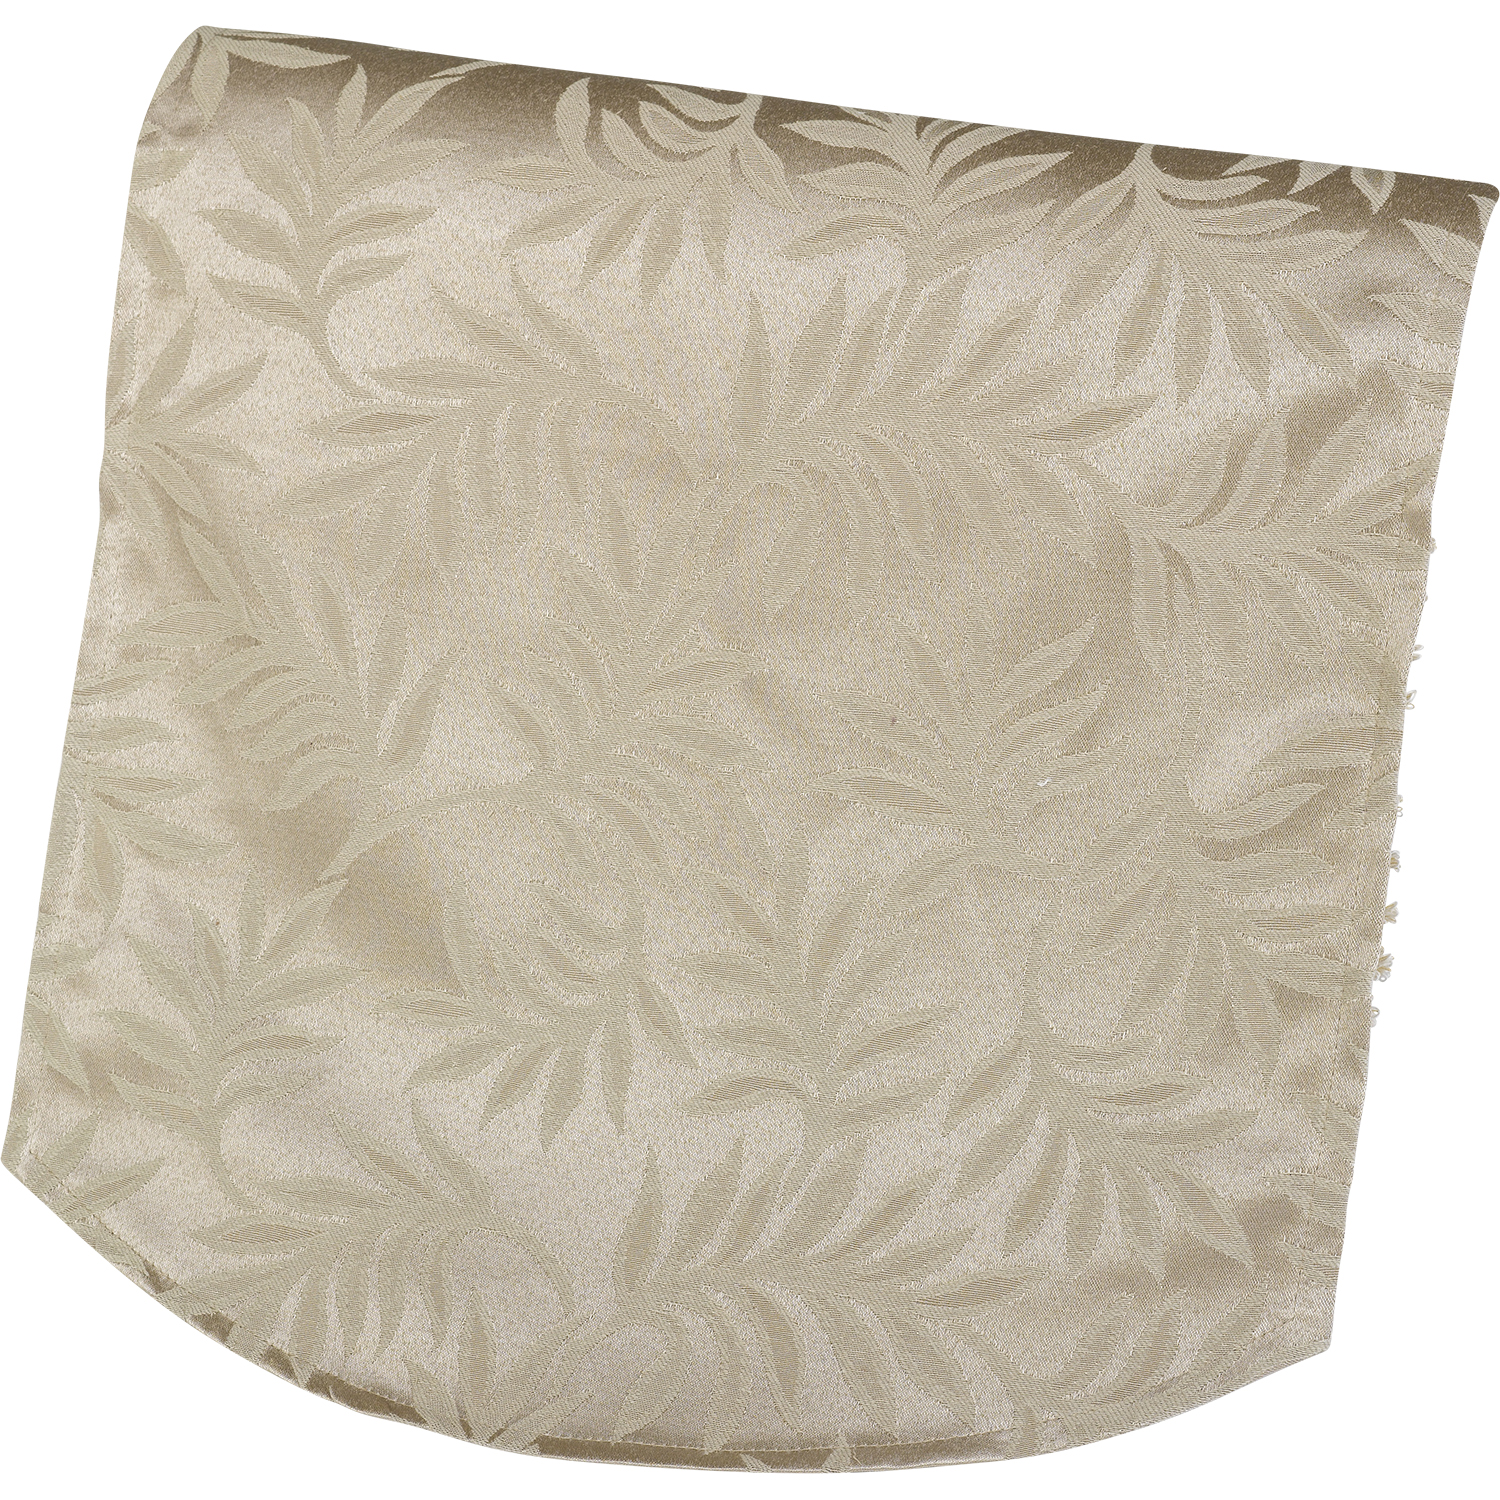 decorative chair covers costco.ca traditional leaf style antimacassar chairback